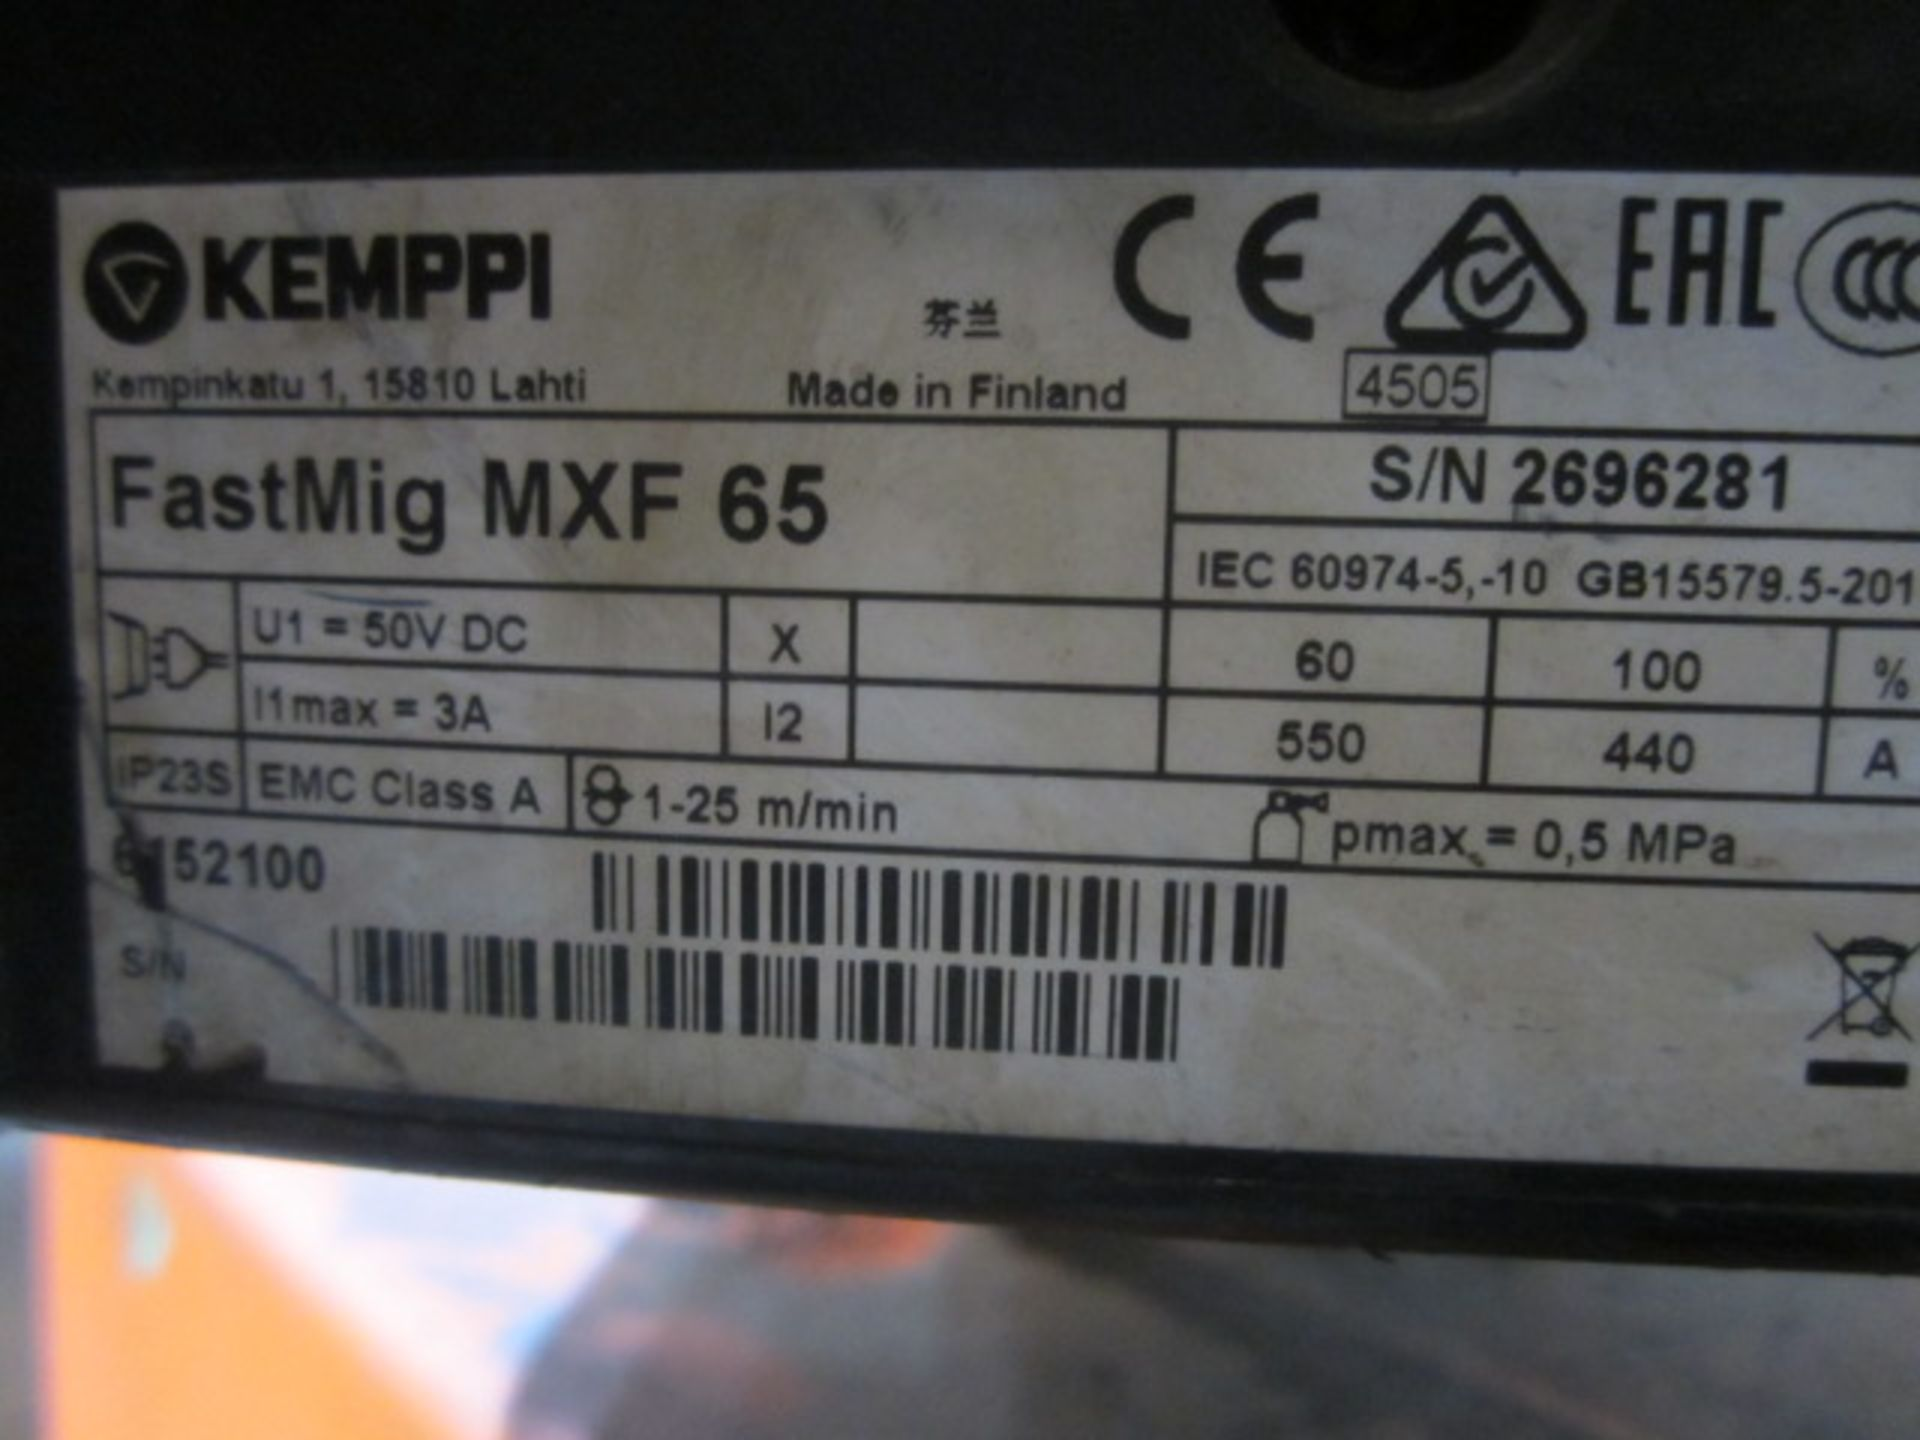 Kemppi Fast Mig M420 mig welder, serial no. 2694678, with Fast Mig MXF65 wire feeder, serial no. - Image 6 of 7